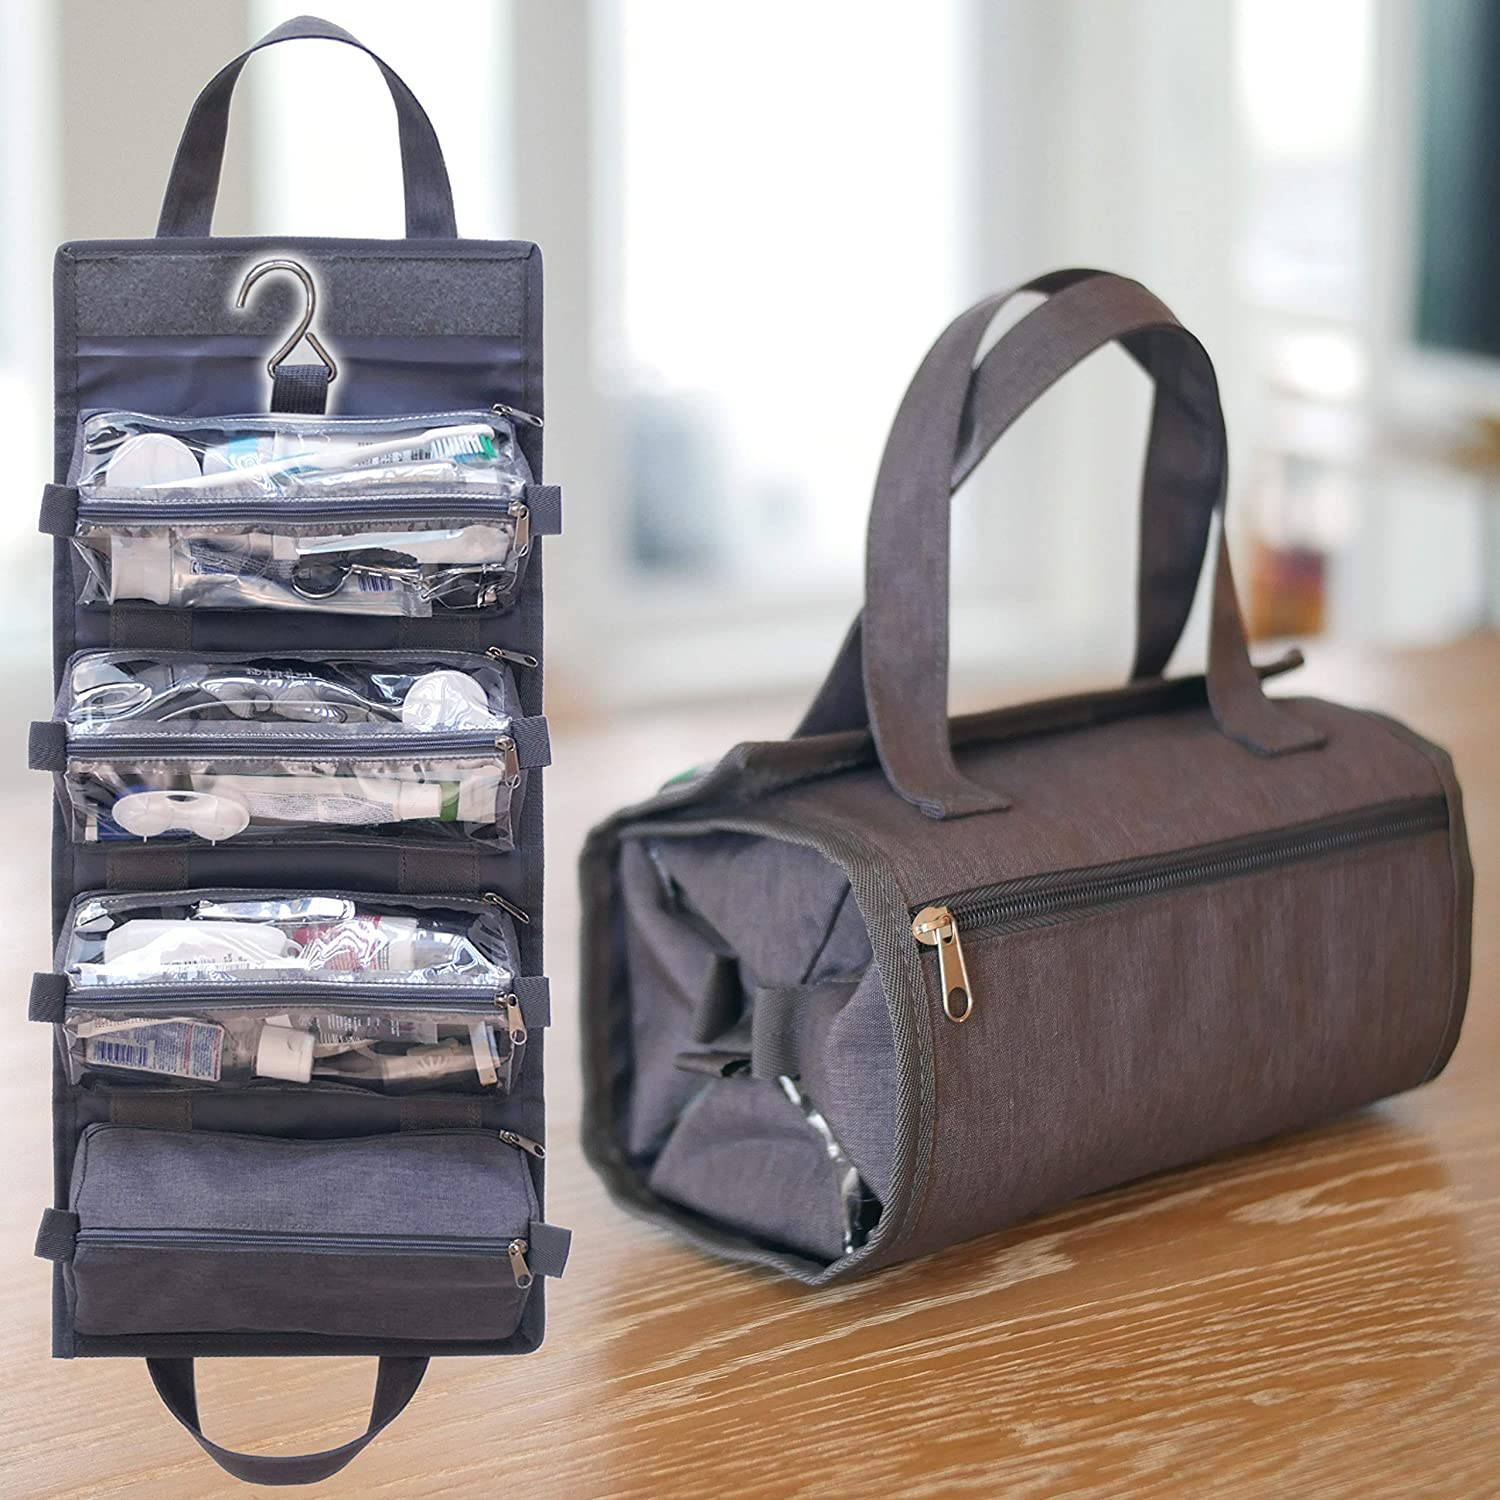 17589485e1c4 Details about Hanging Toiletry Travel Bag Organizer Roll Up Cosmetic Kit  Hook Carry On Grey